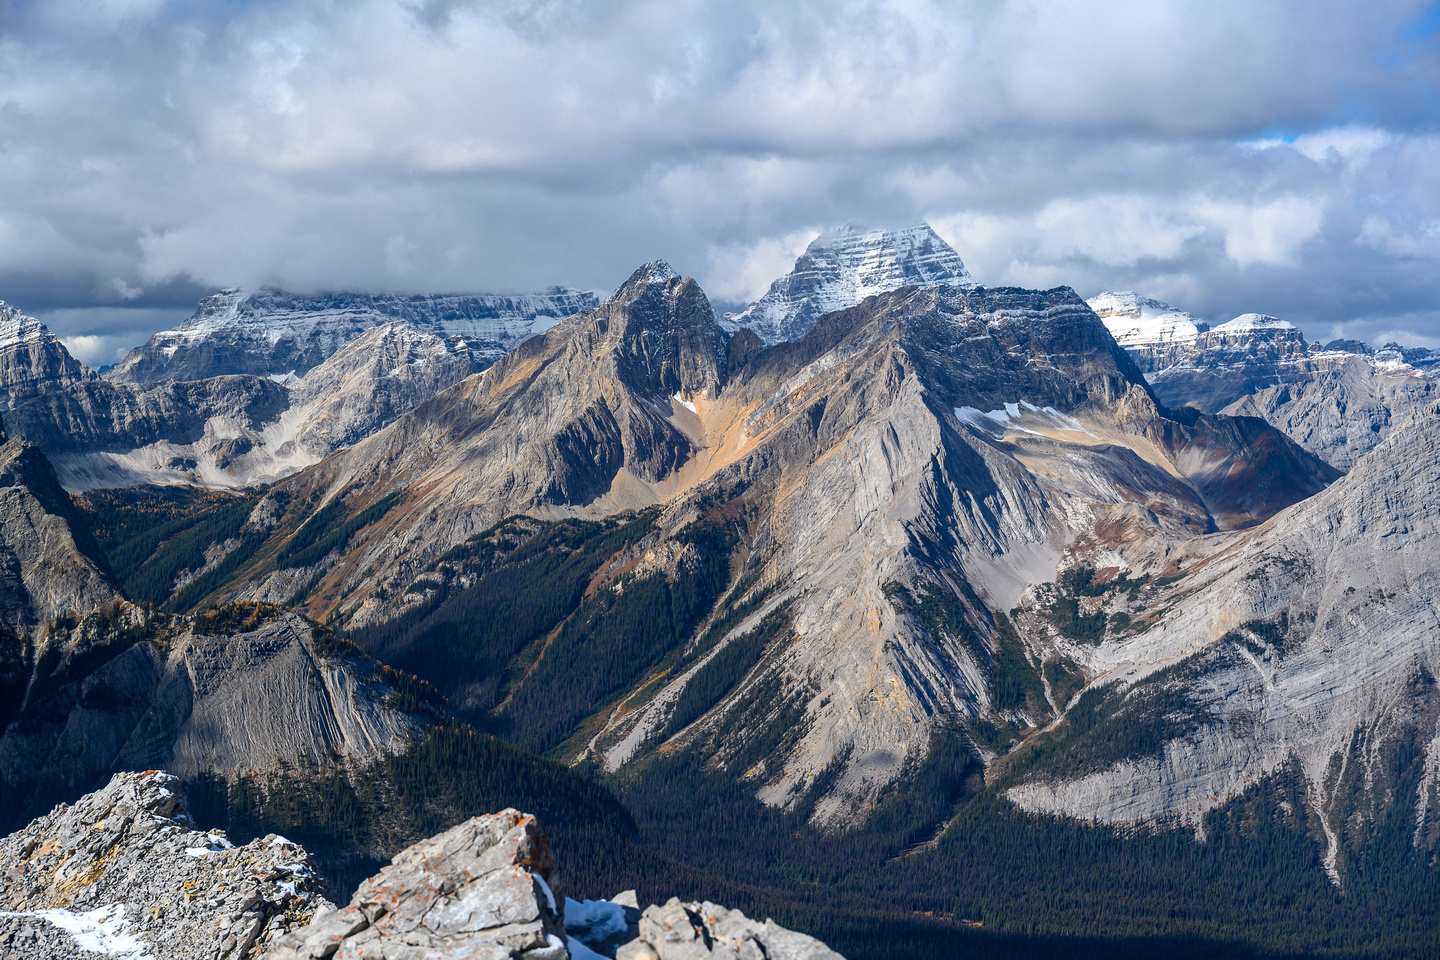 Mount Byng and Assiniboine.